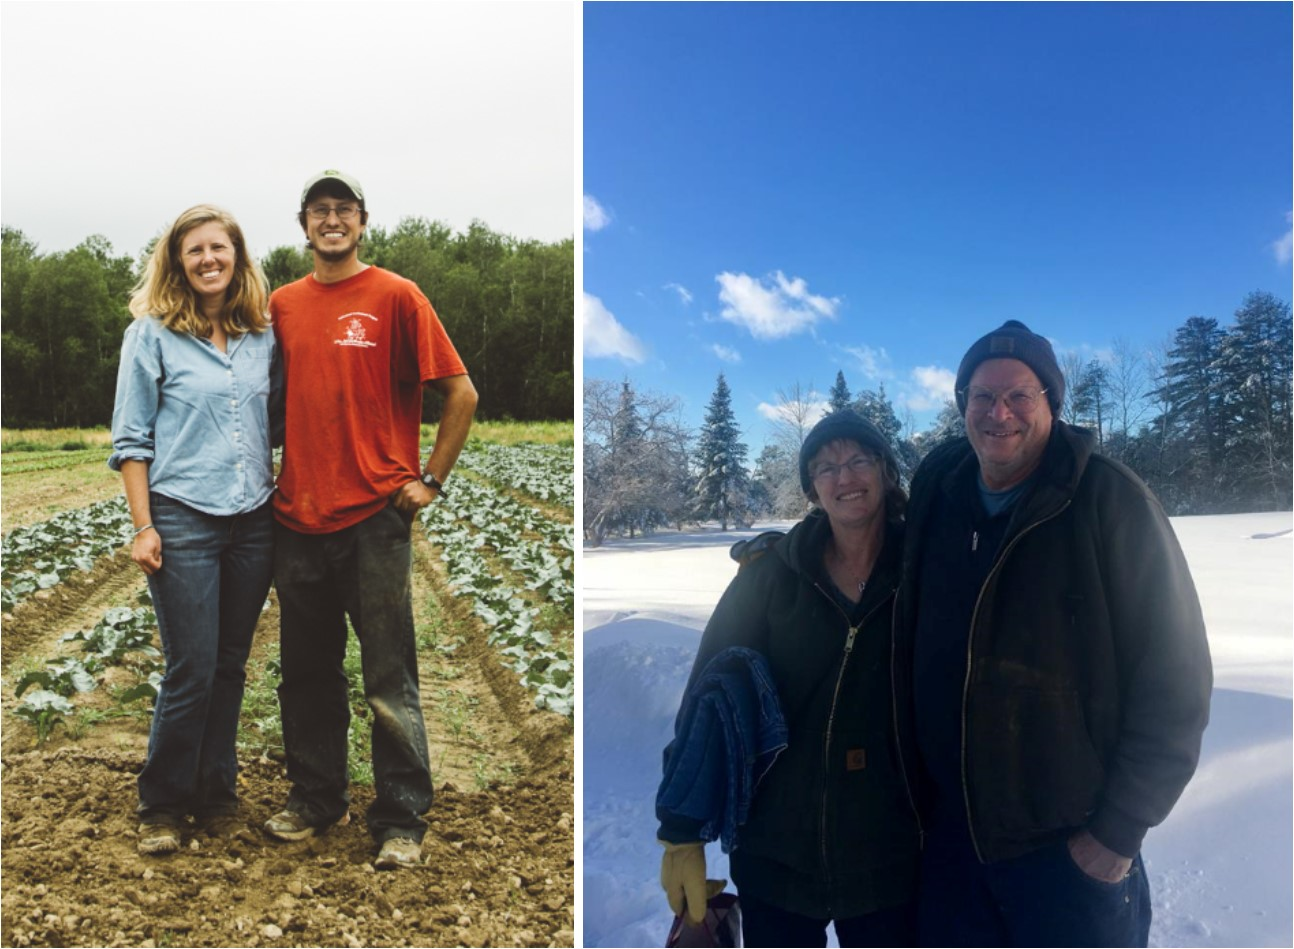 Bethany Allen & Eric Ferguson of Harvest Tide Organics (R) and Kathy & Pete Karonis of Fairwinds Farm (L) own the protected properties.